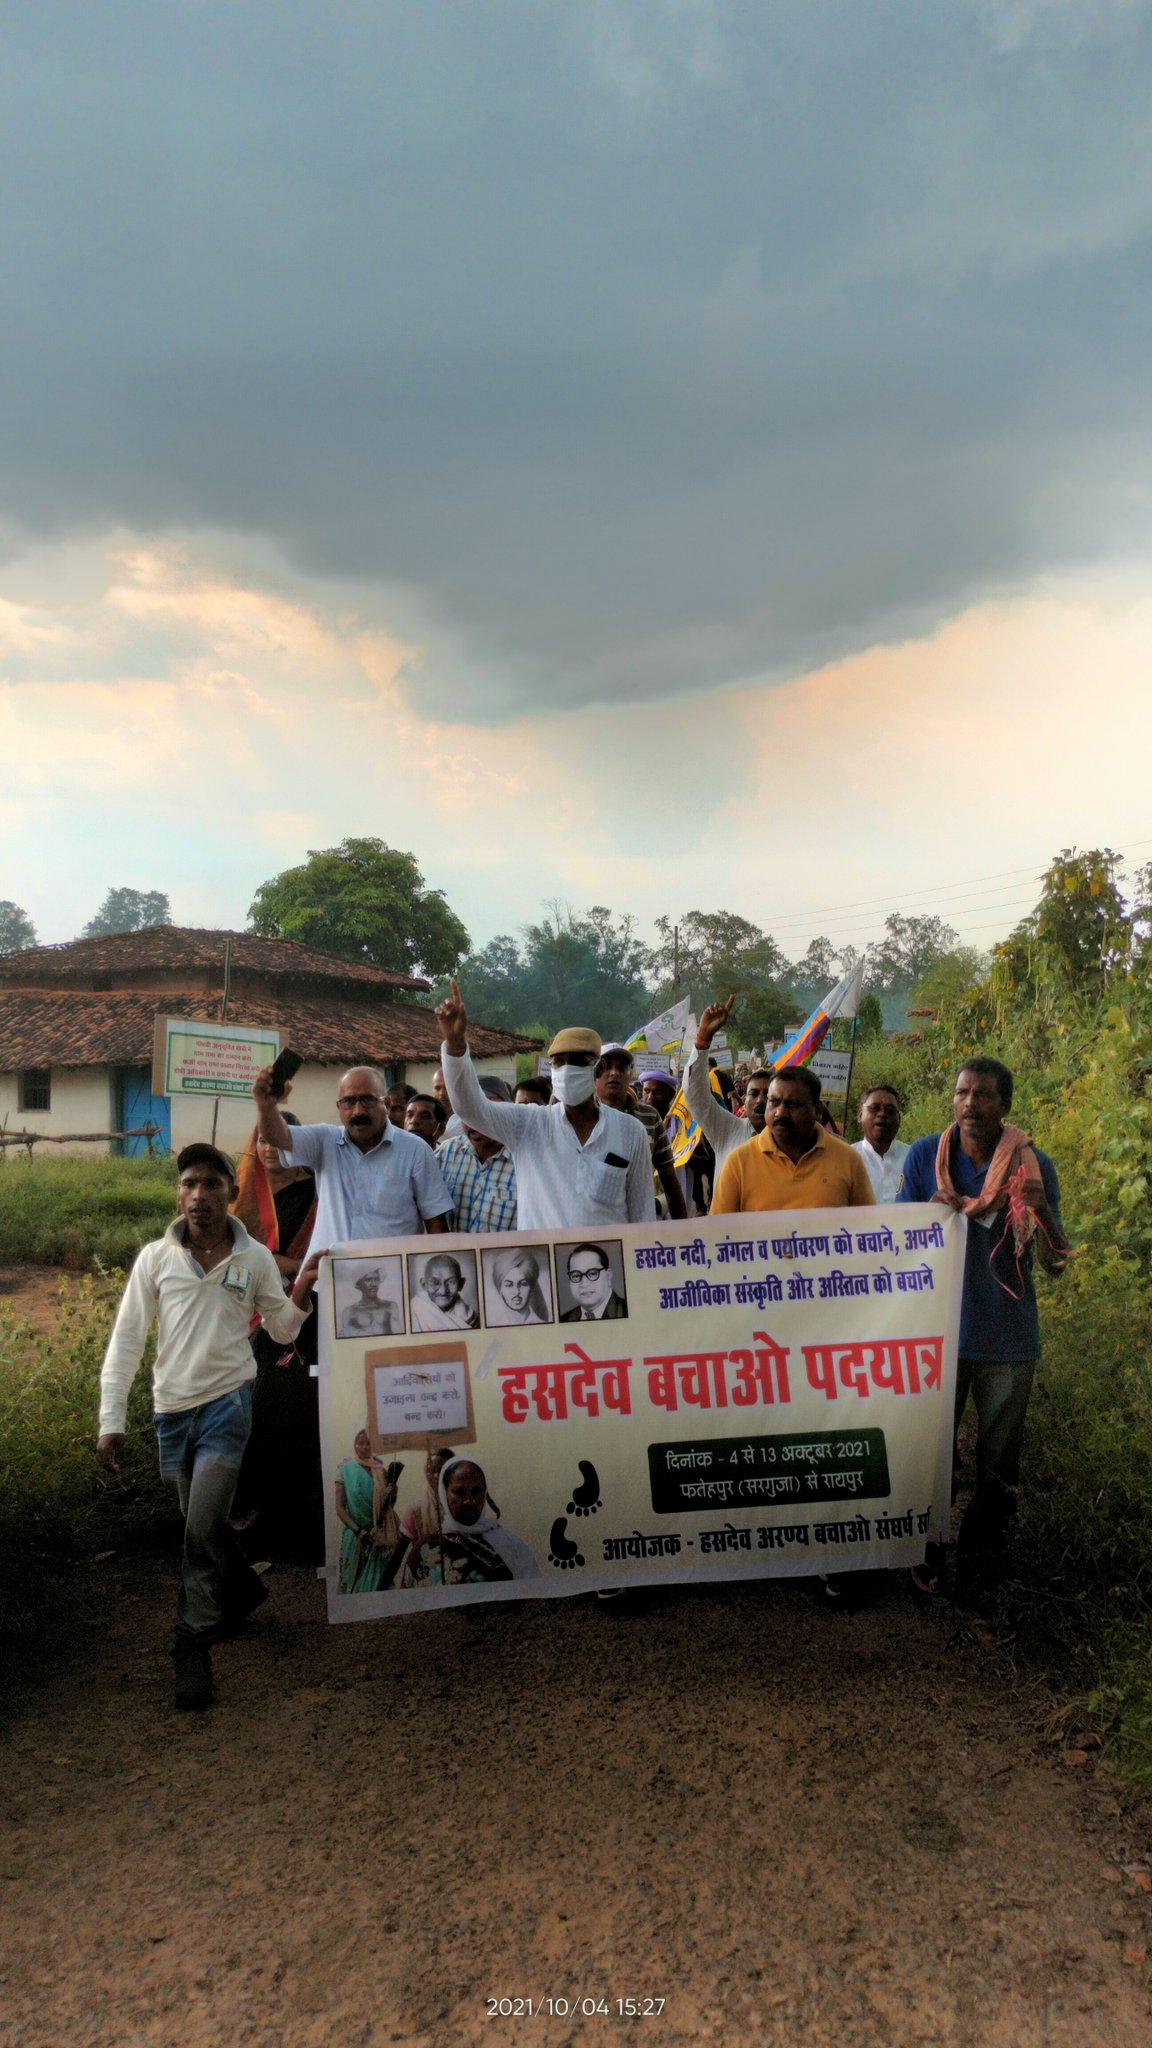 Marching despite stormy conditions to save the Hasdeo forests from coal mining. Image Twitter / @SaveHasdeo